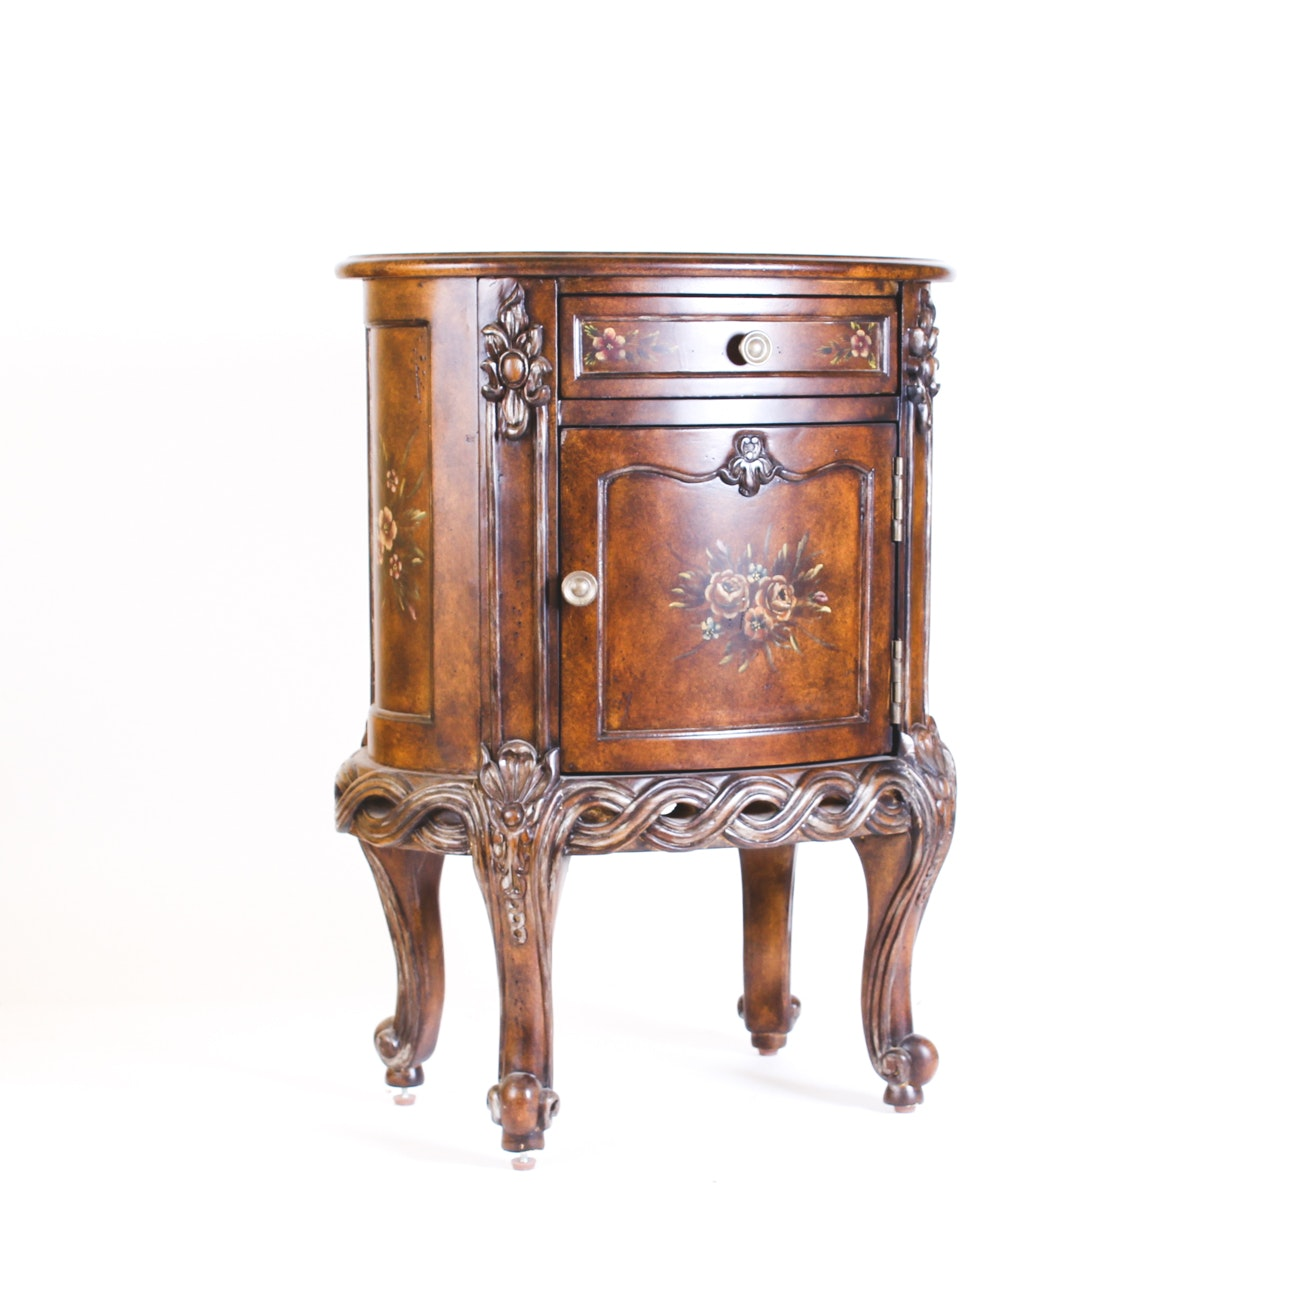 Oval Commode Stand with Hand-Painted Floral Motif